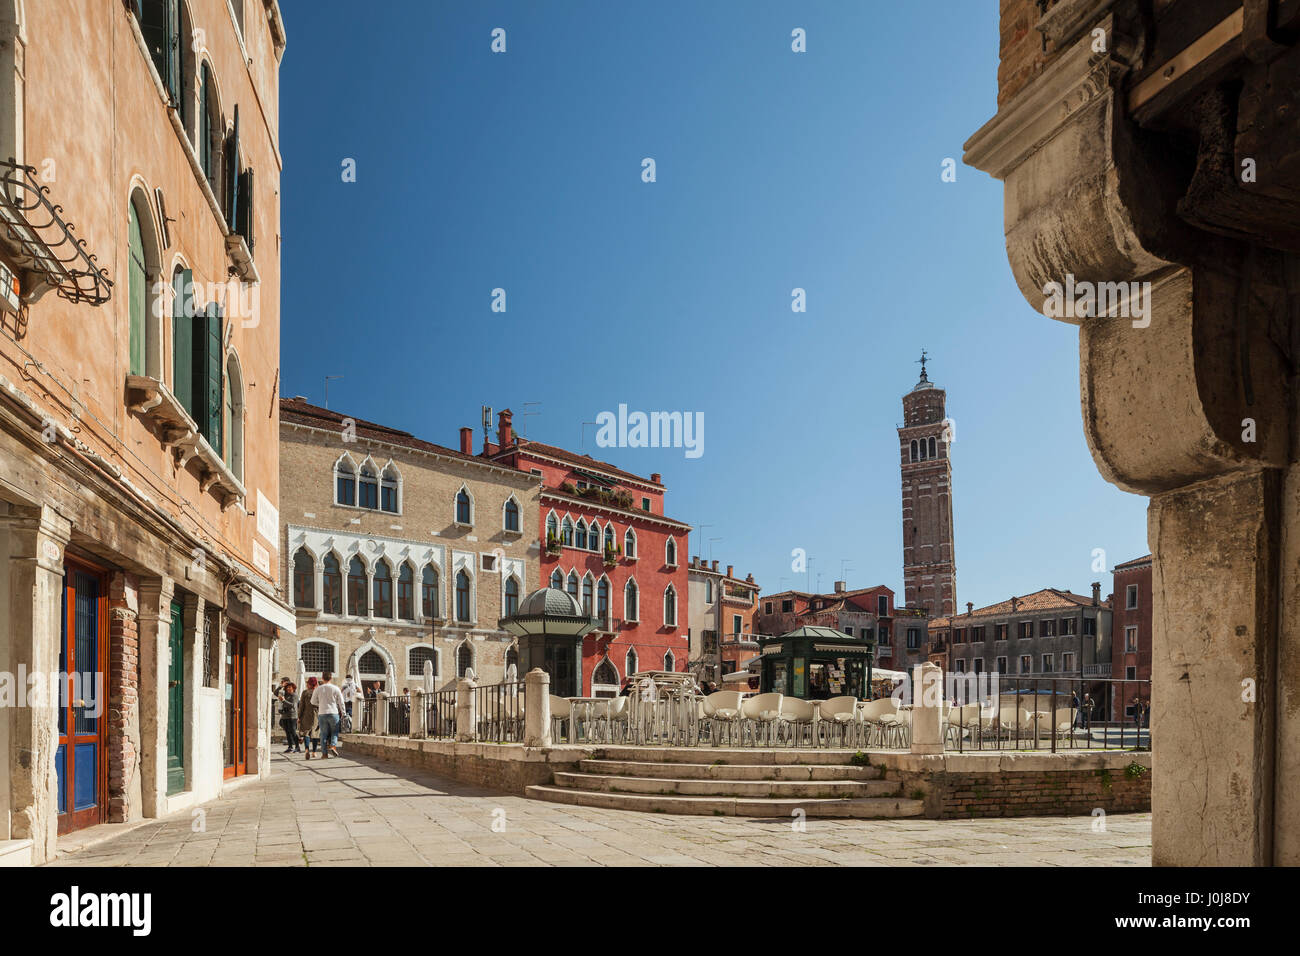 Campo Sant'Anzolo in sestiere of San Marco, Venice, Italy. - Stock Image